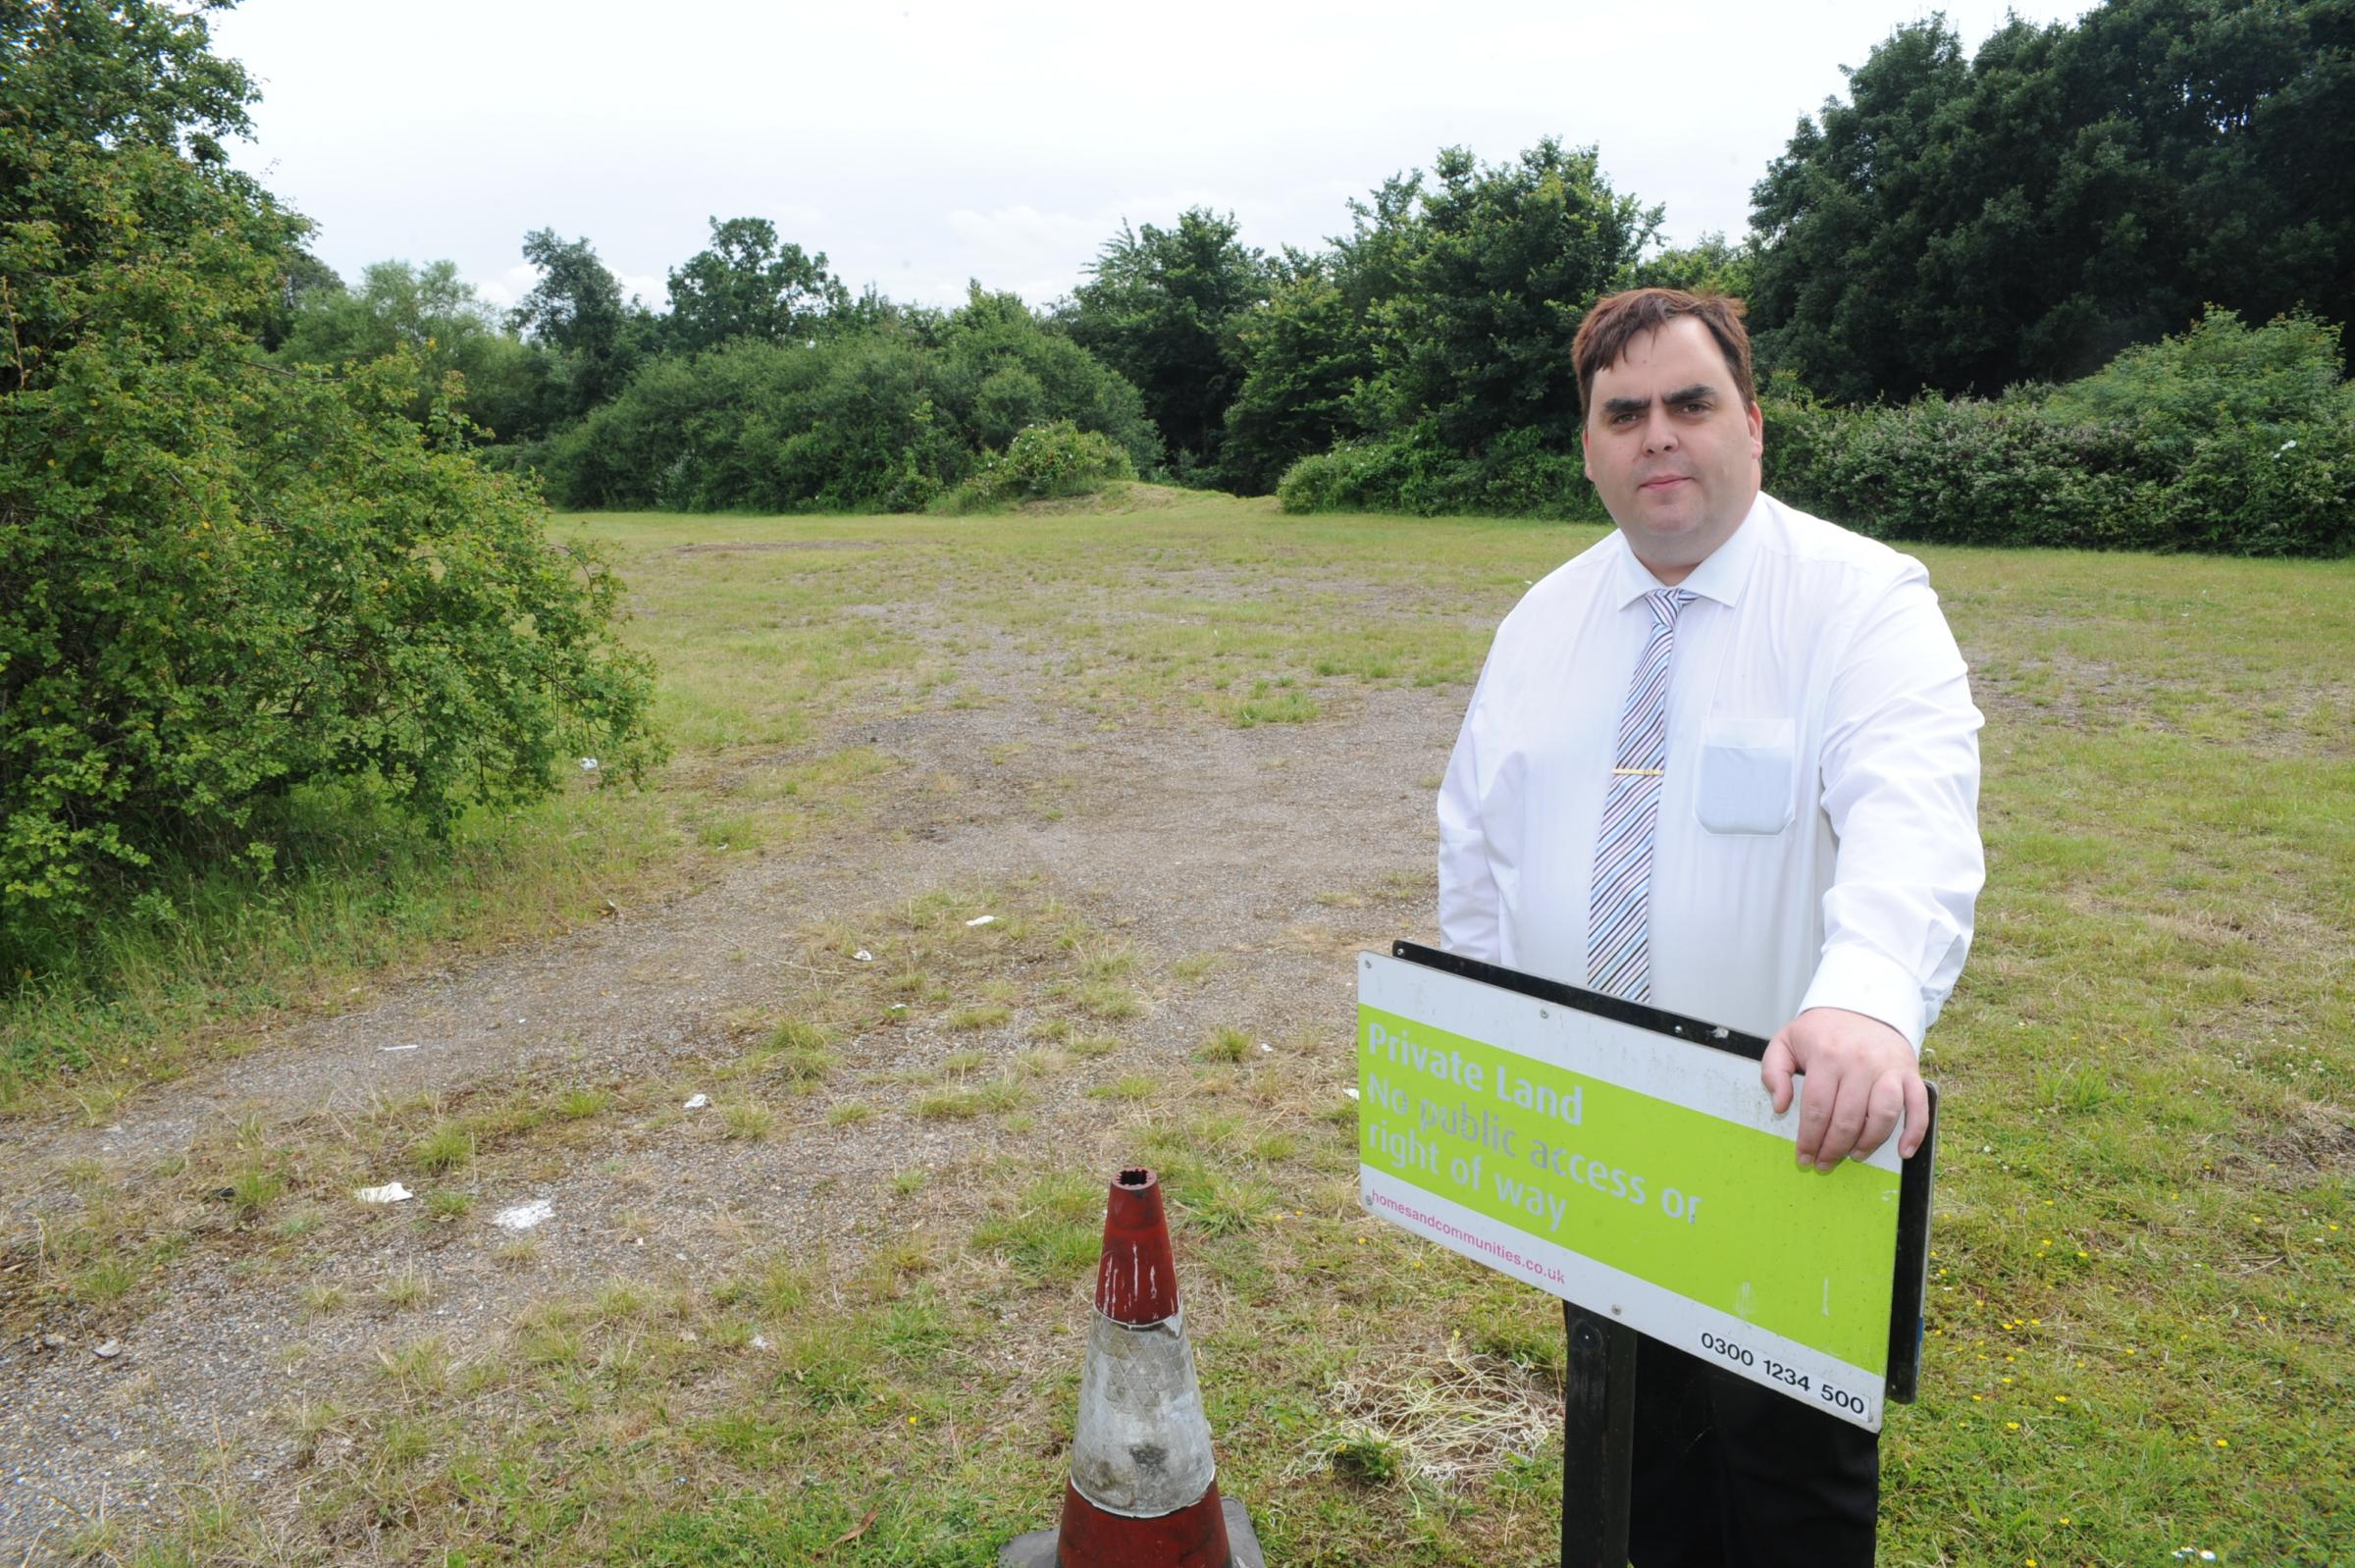 Kerry Smith looking at land thought to be plans for a hotel next to Basildon golf course